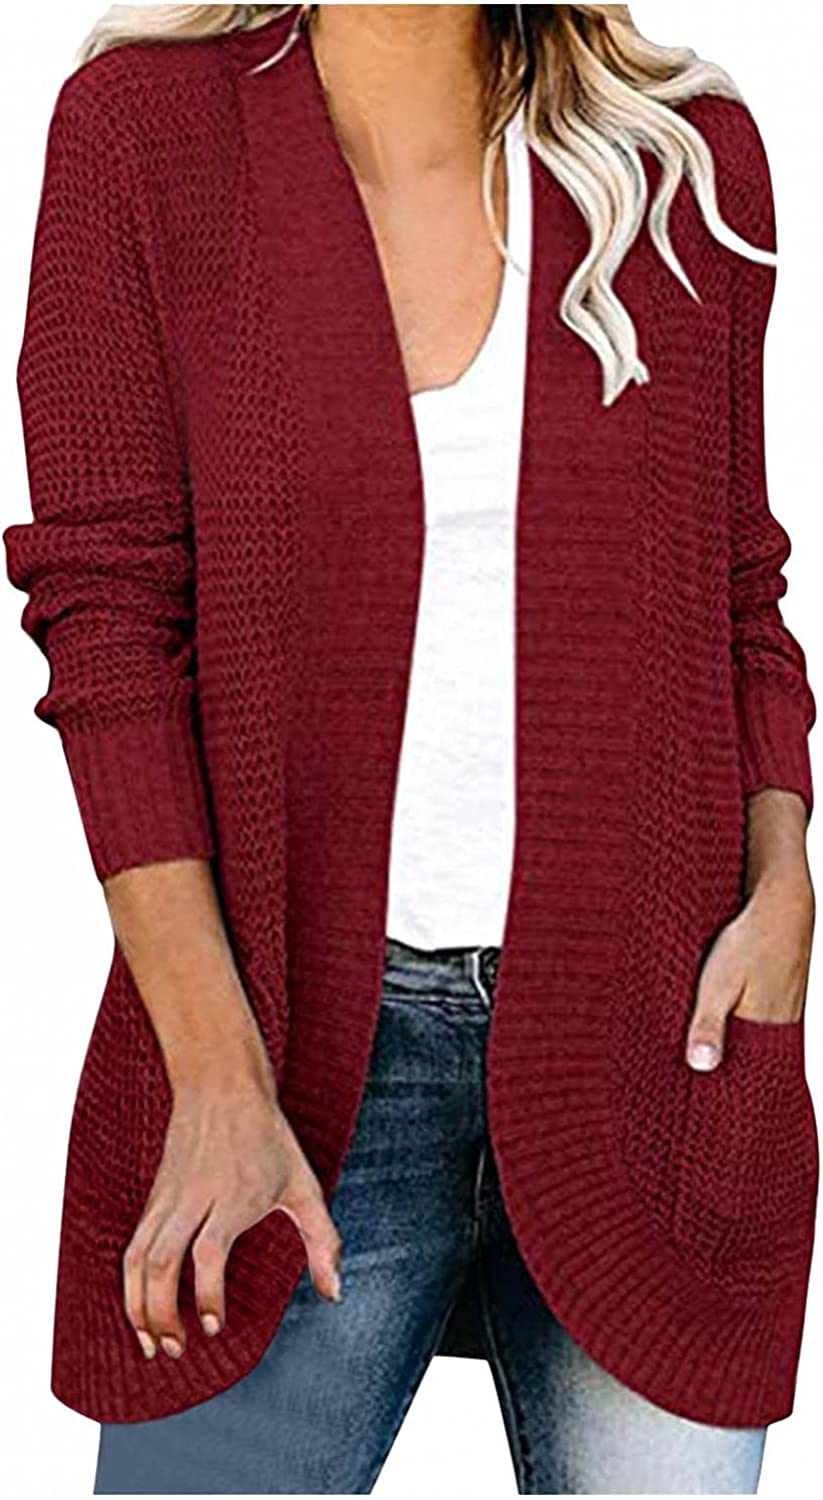 Masbird Sweaters for Women Casual Long Sleeve Cardigan Open Front Button Loose Knitted Oversized Sweater Coat Blouse